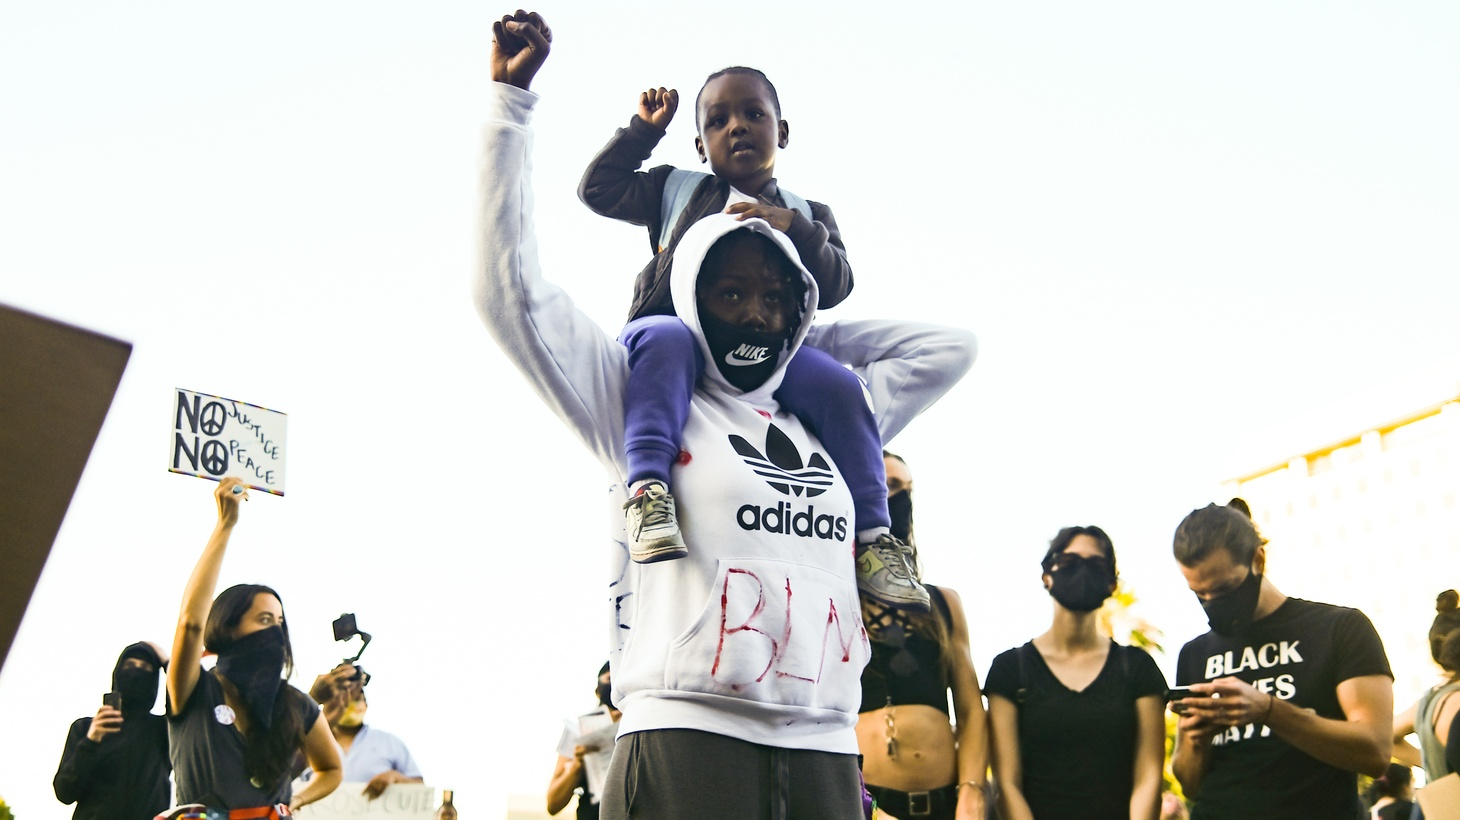 A demonstrator and their child raise their fists in the air in front of the federal prison in downtown LA during a rally.